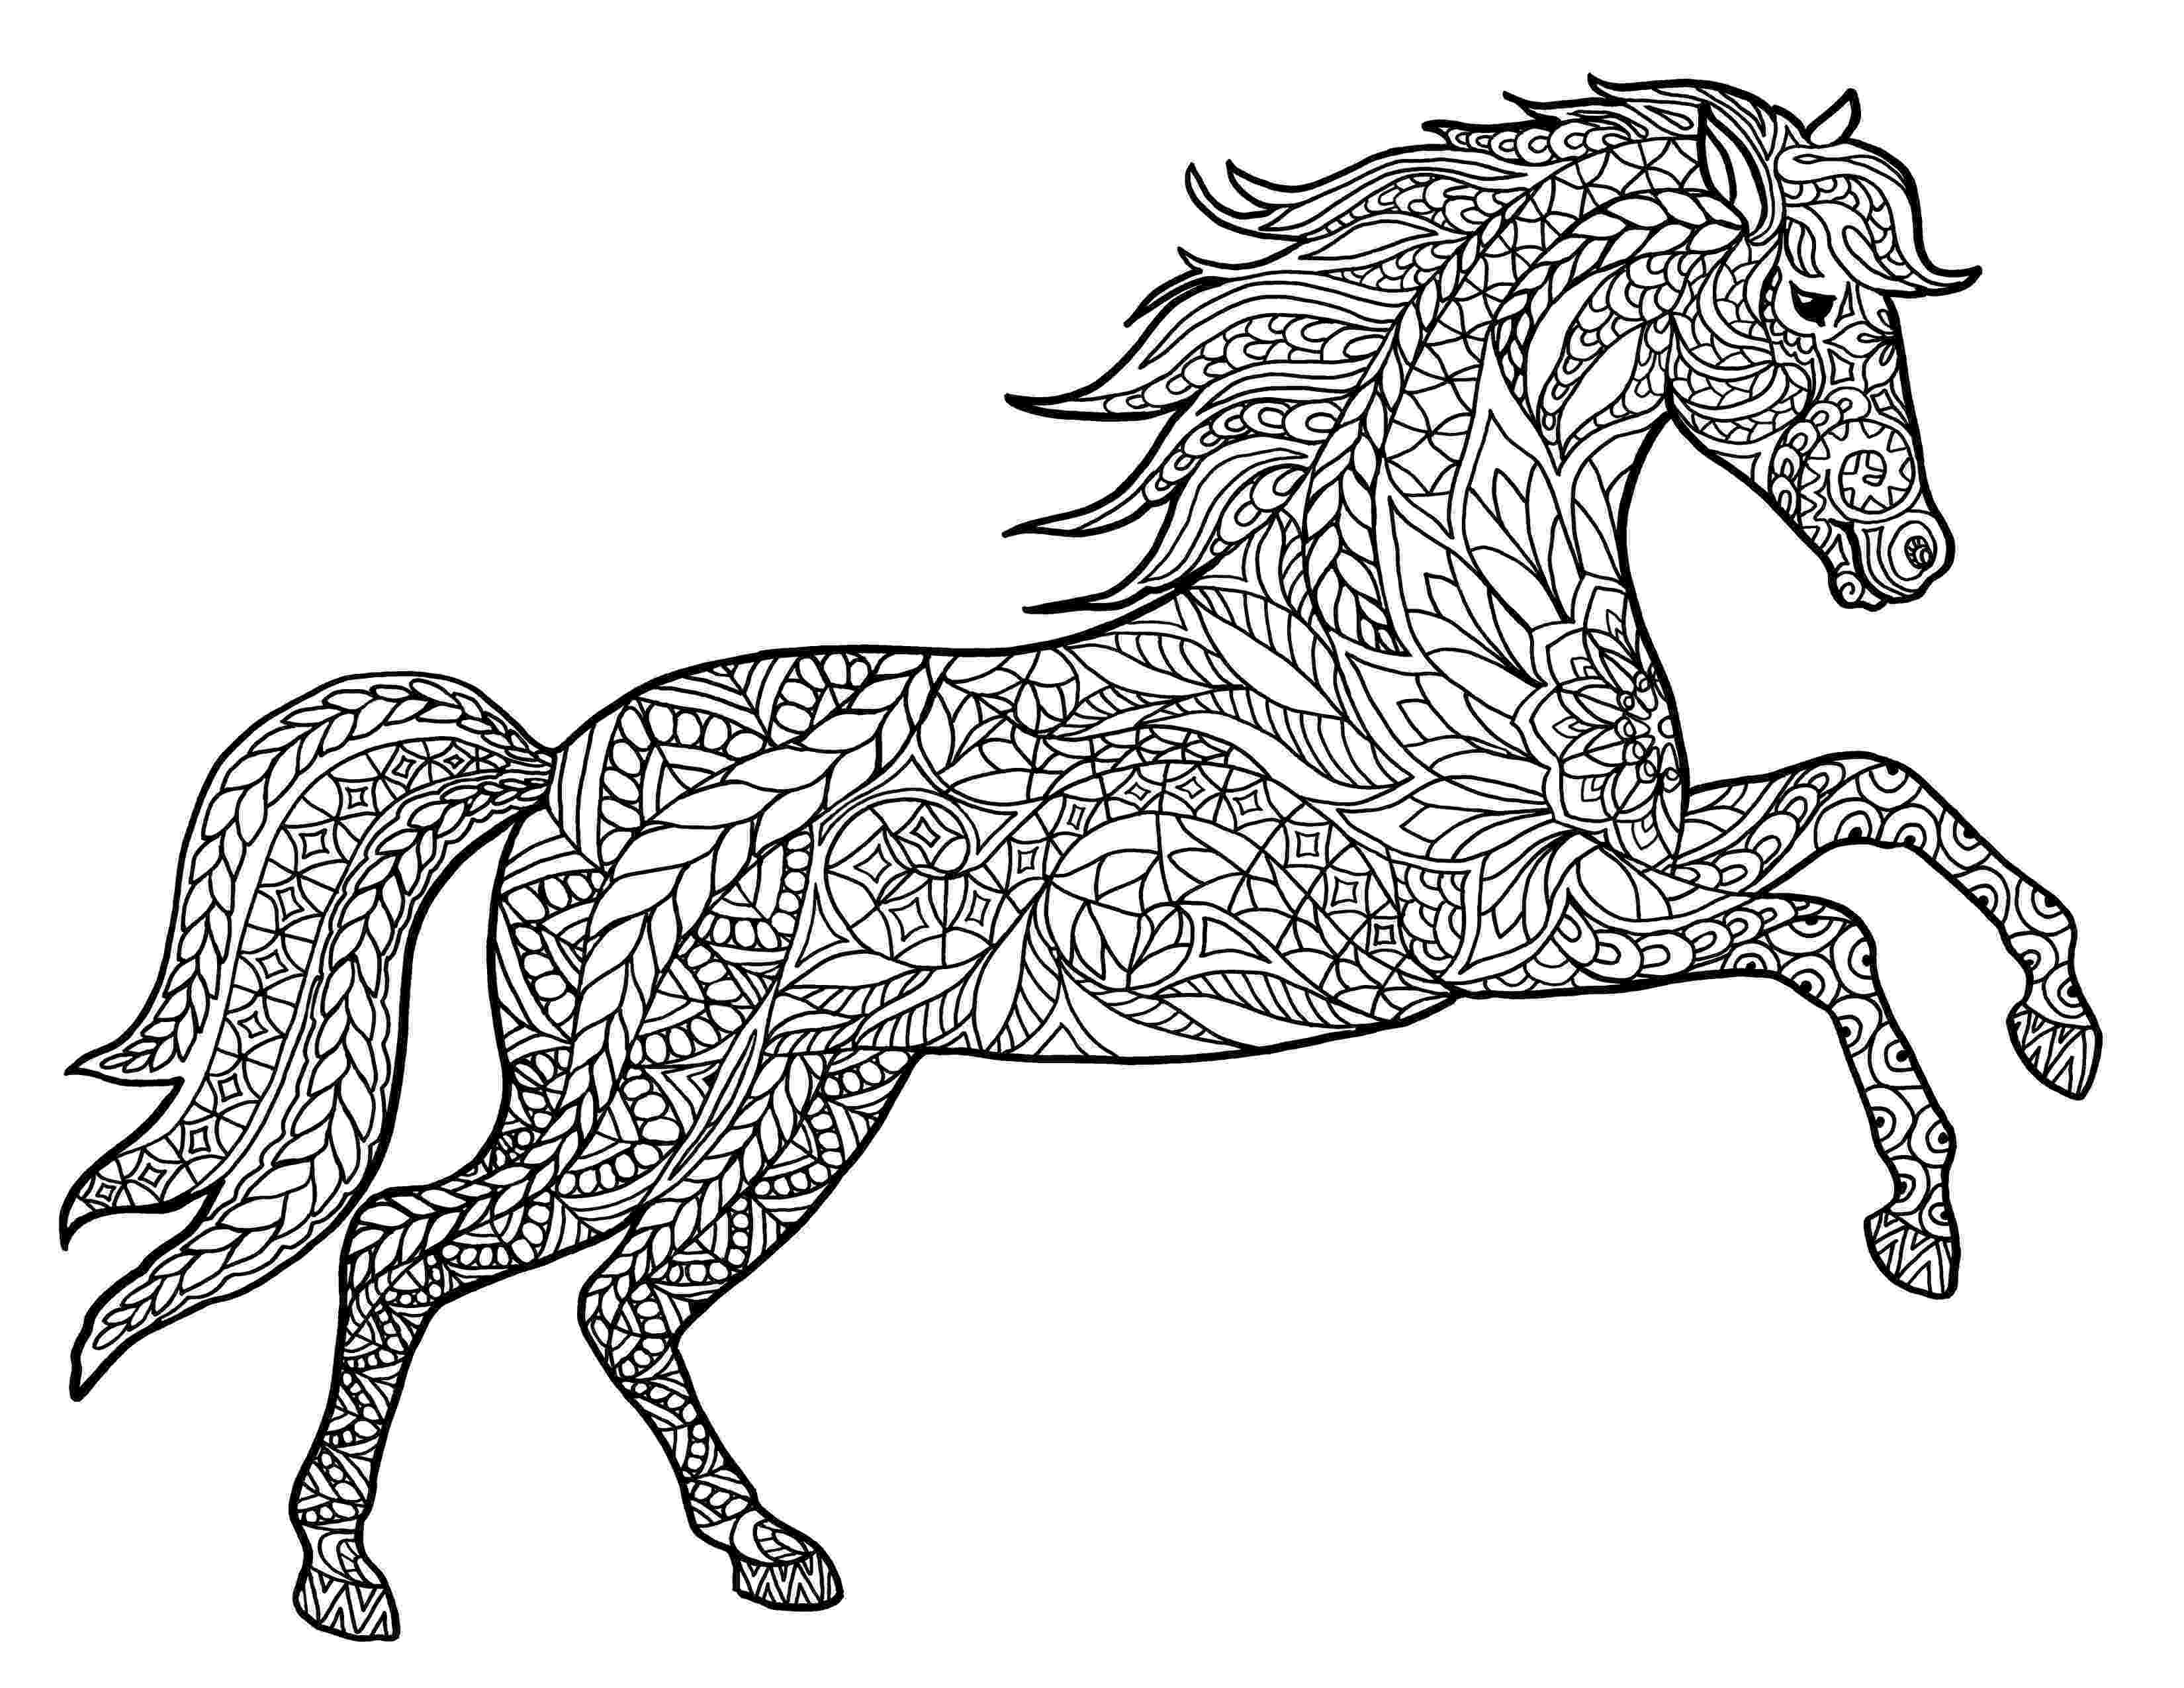 adult coloring pages animals animal coloring pages pdf free adult coloring pages adult pages coloring animals